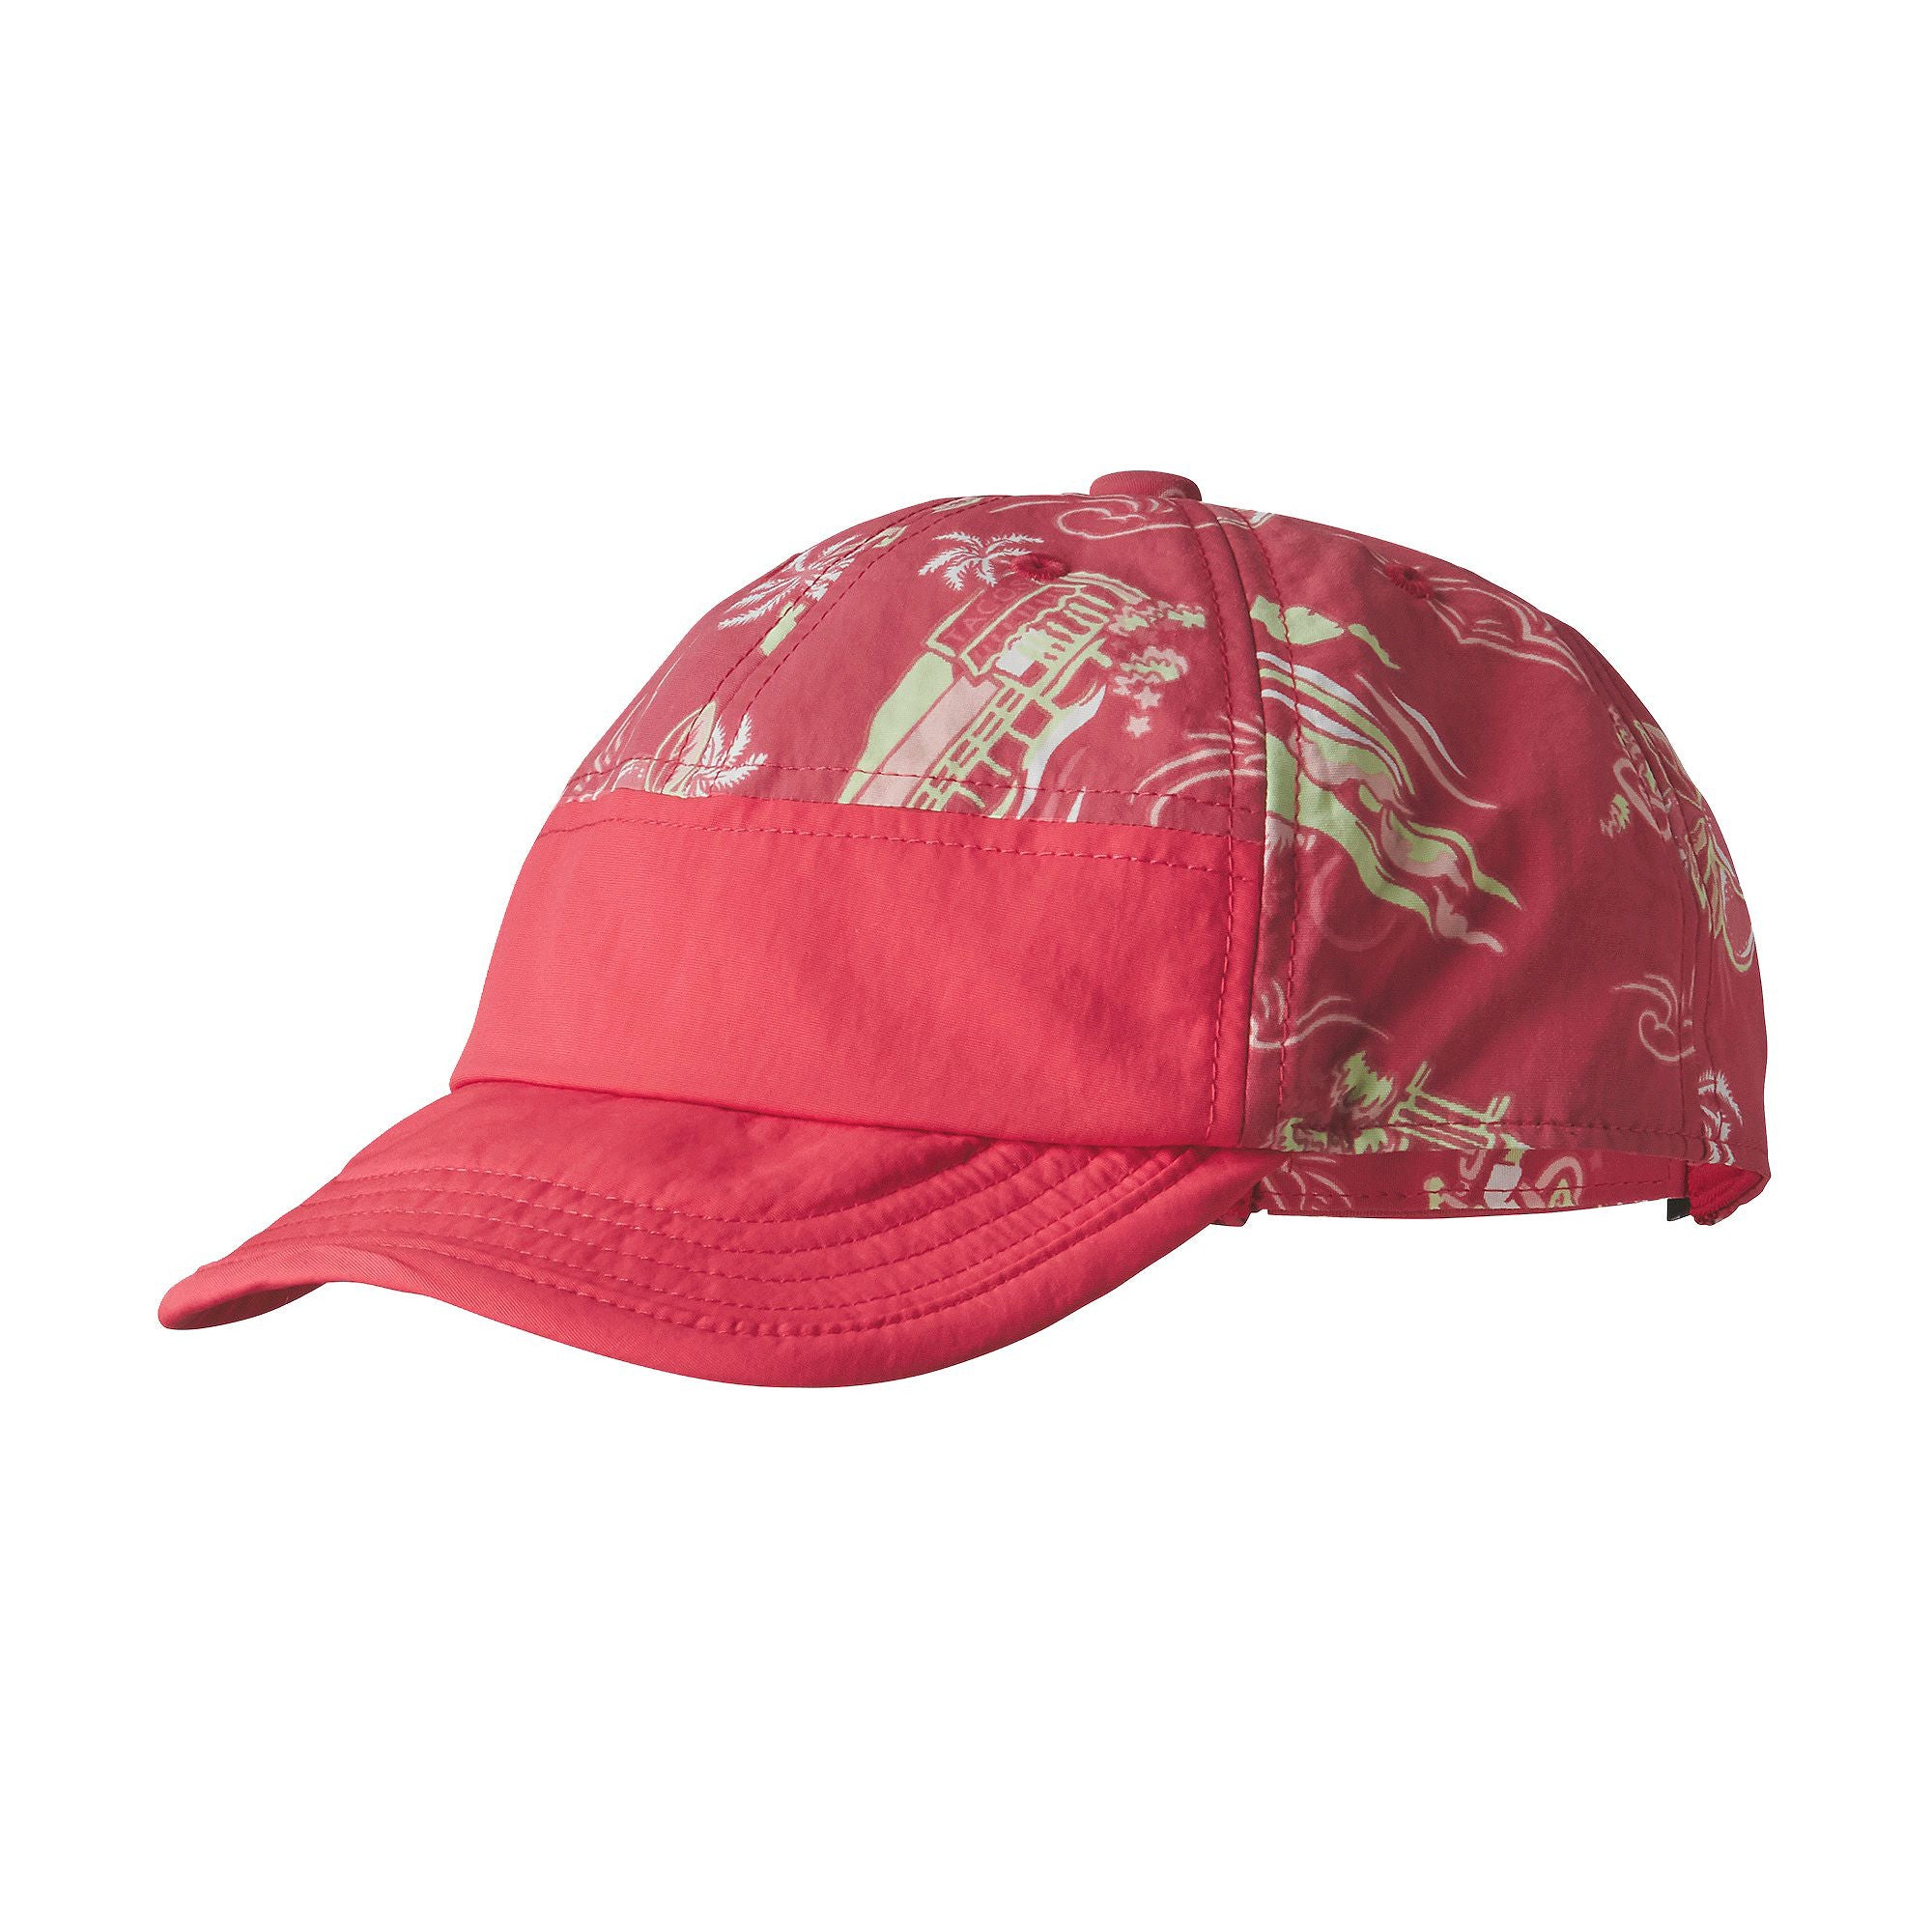 Patagonia Baby Baggies™ Cap - C Street Small: Cerise Front View